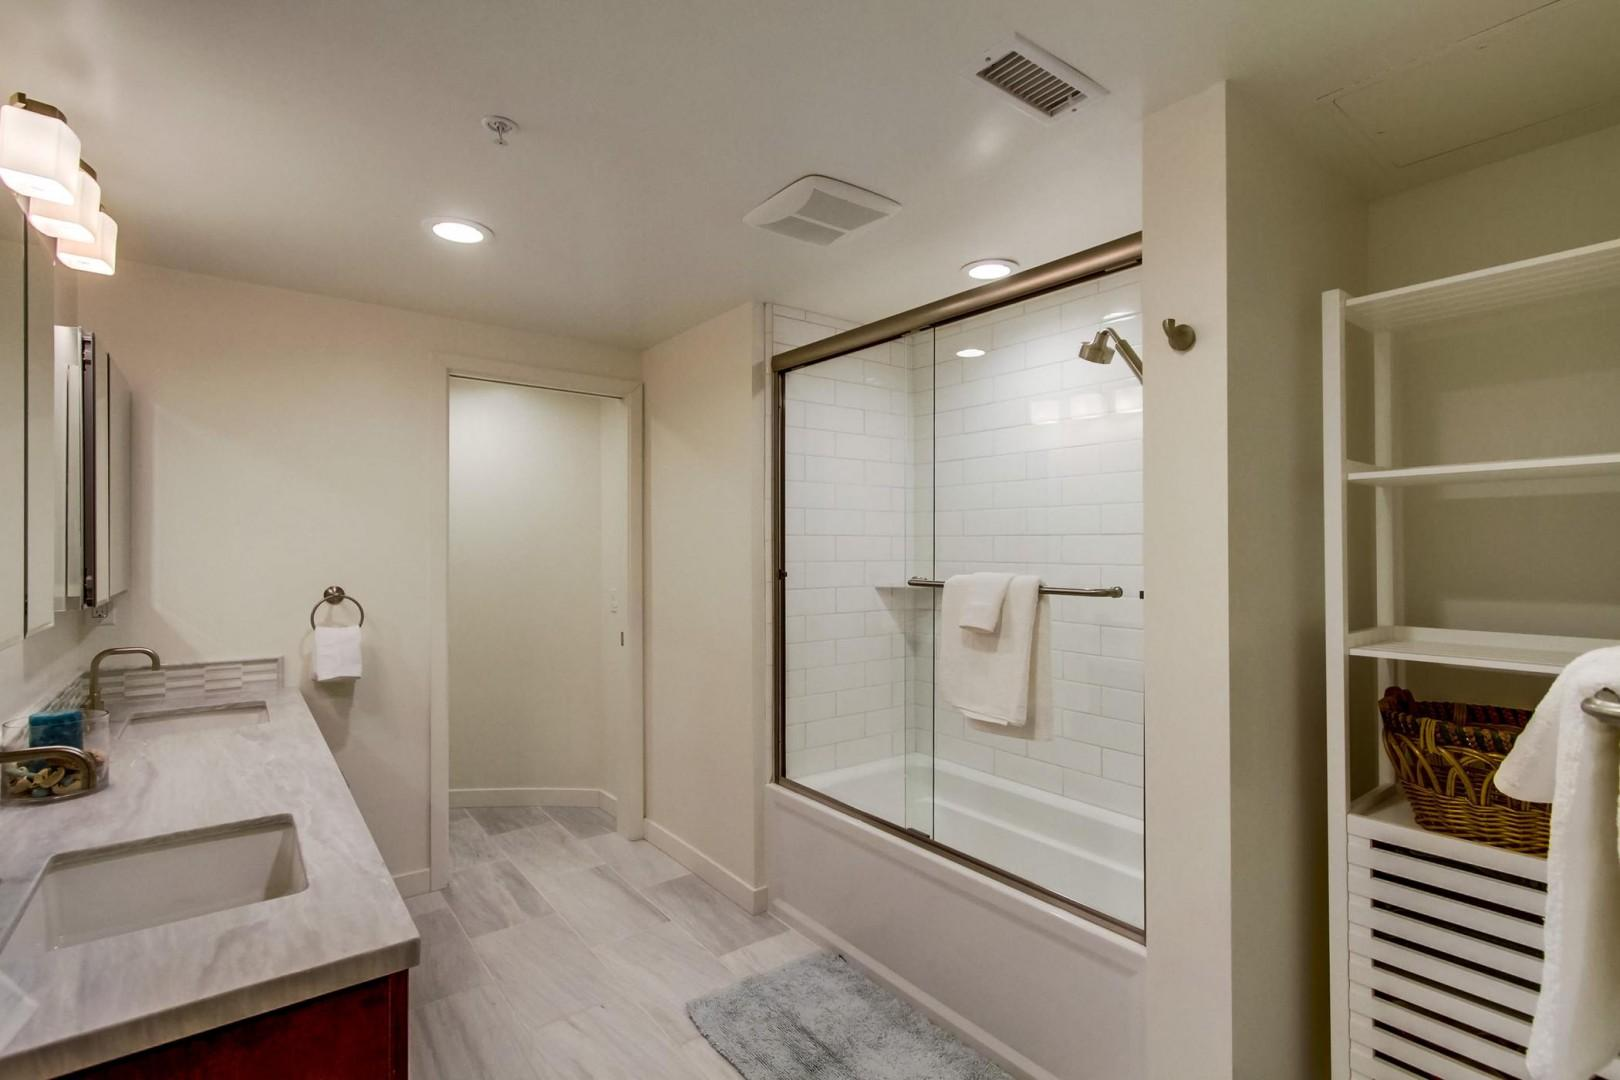 Hall bath adjacent to bedroom 2 features a dual-sink vanity and tub-shower combo